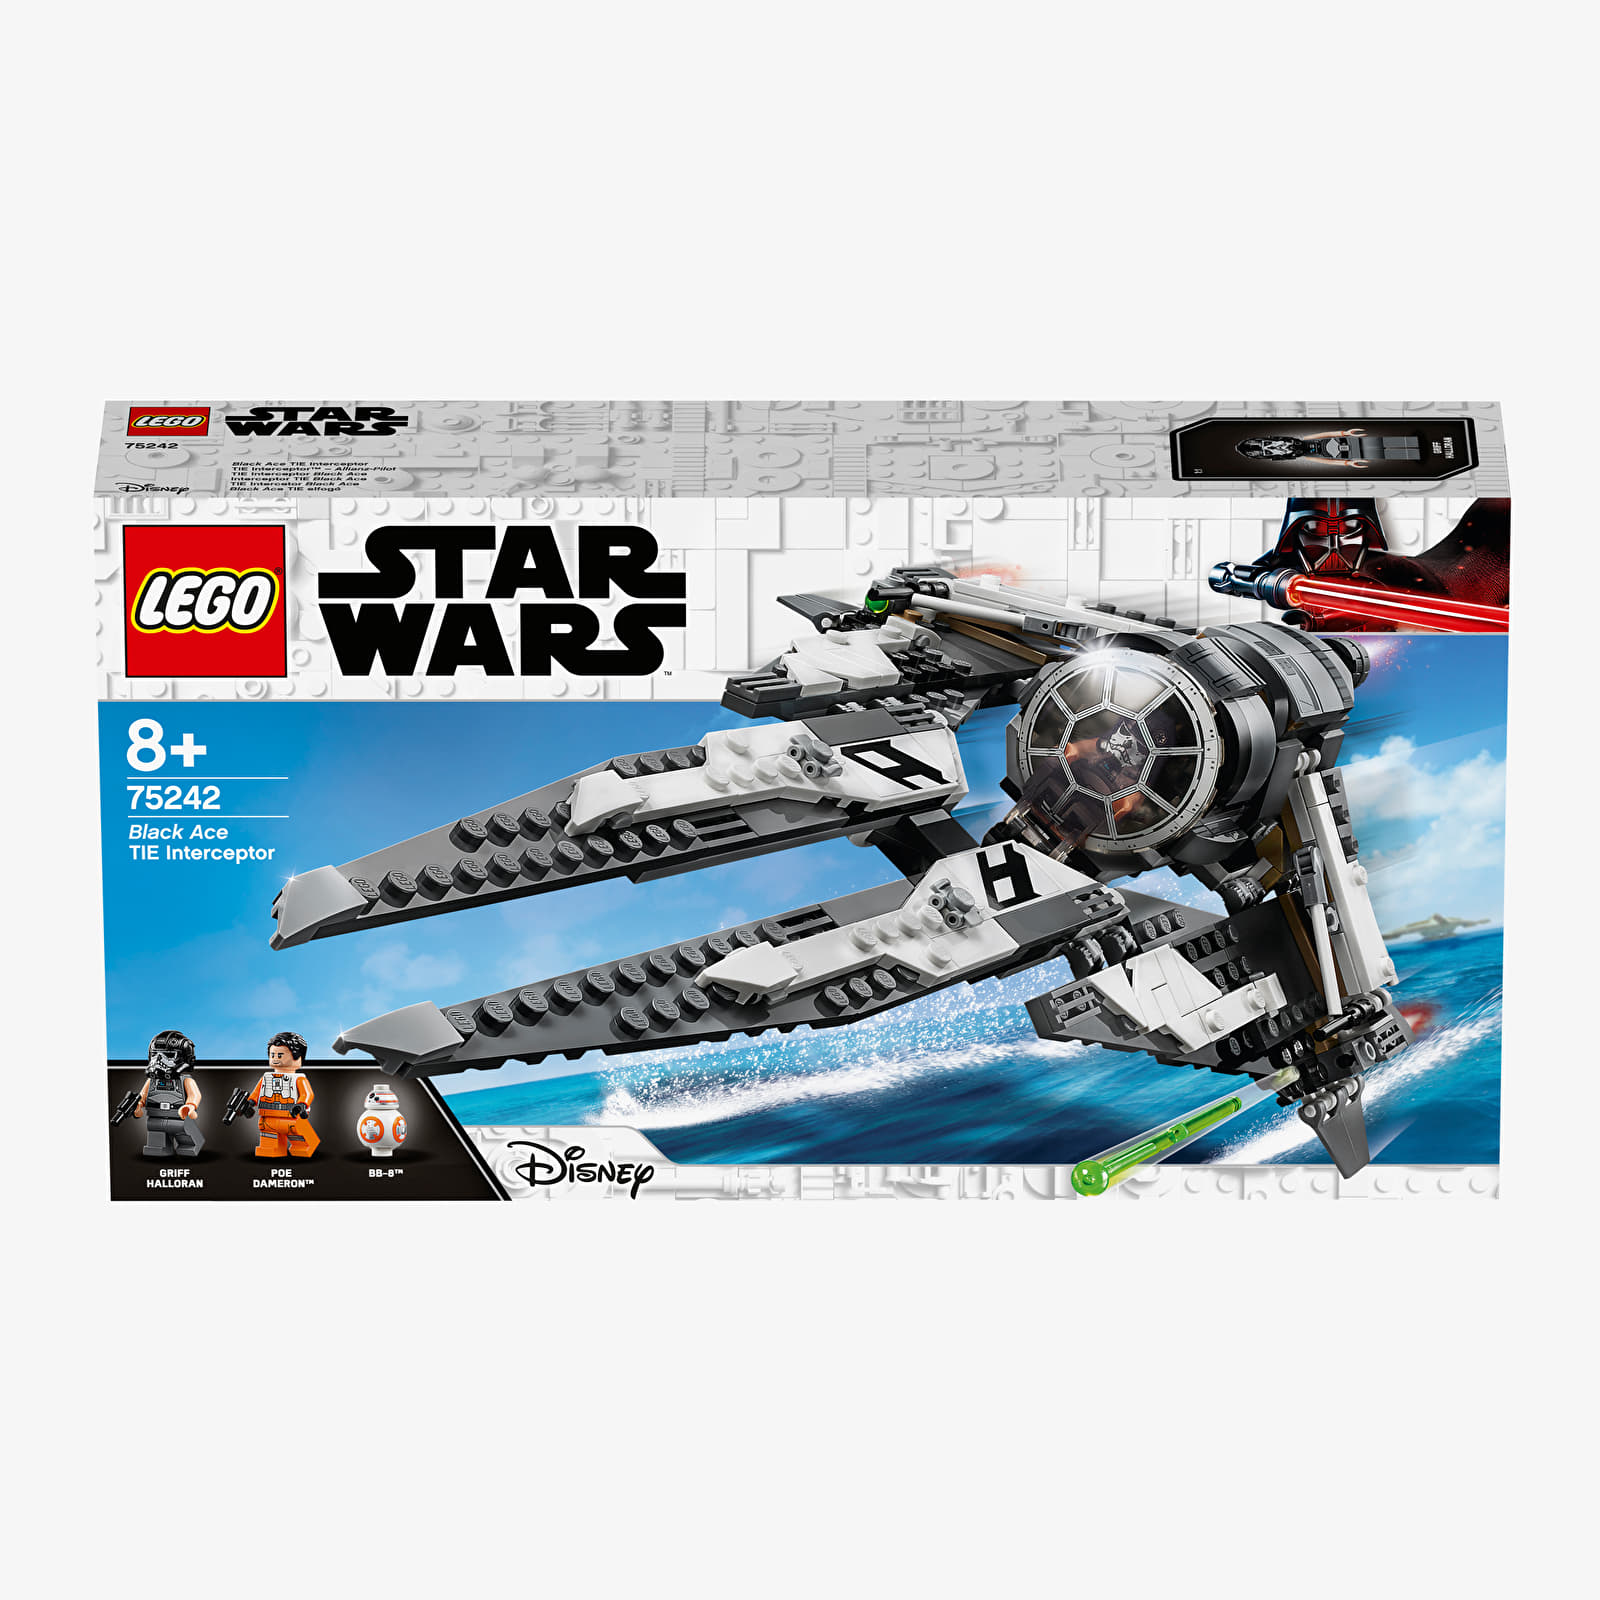 Kits de LEGO LEGO Star Wars Black Ace TIE Interceptor